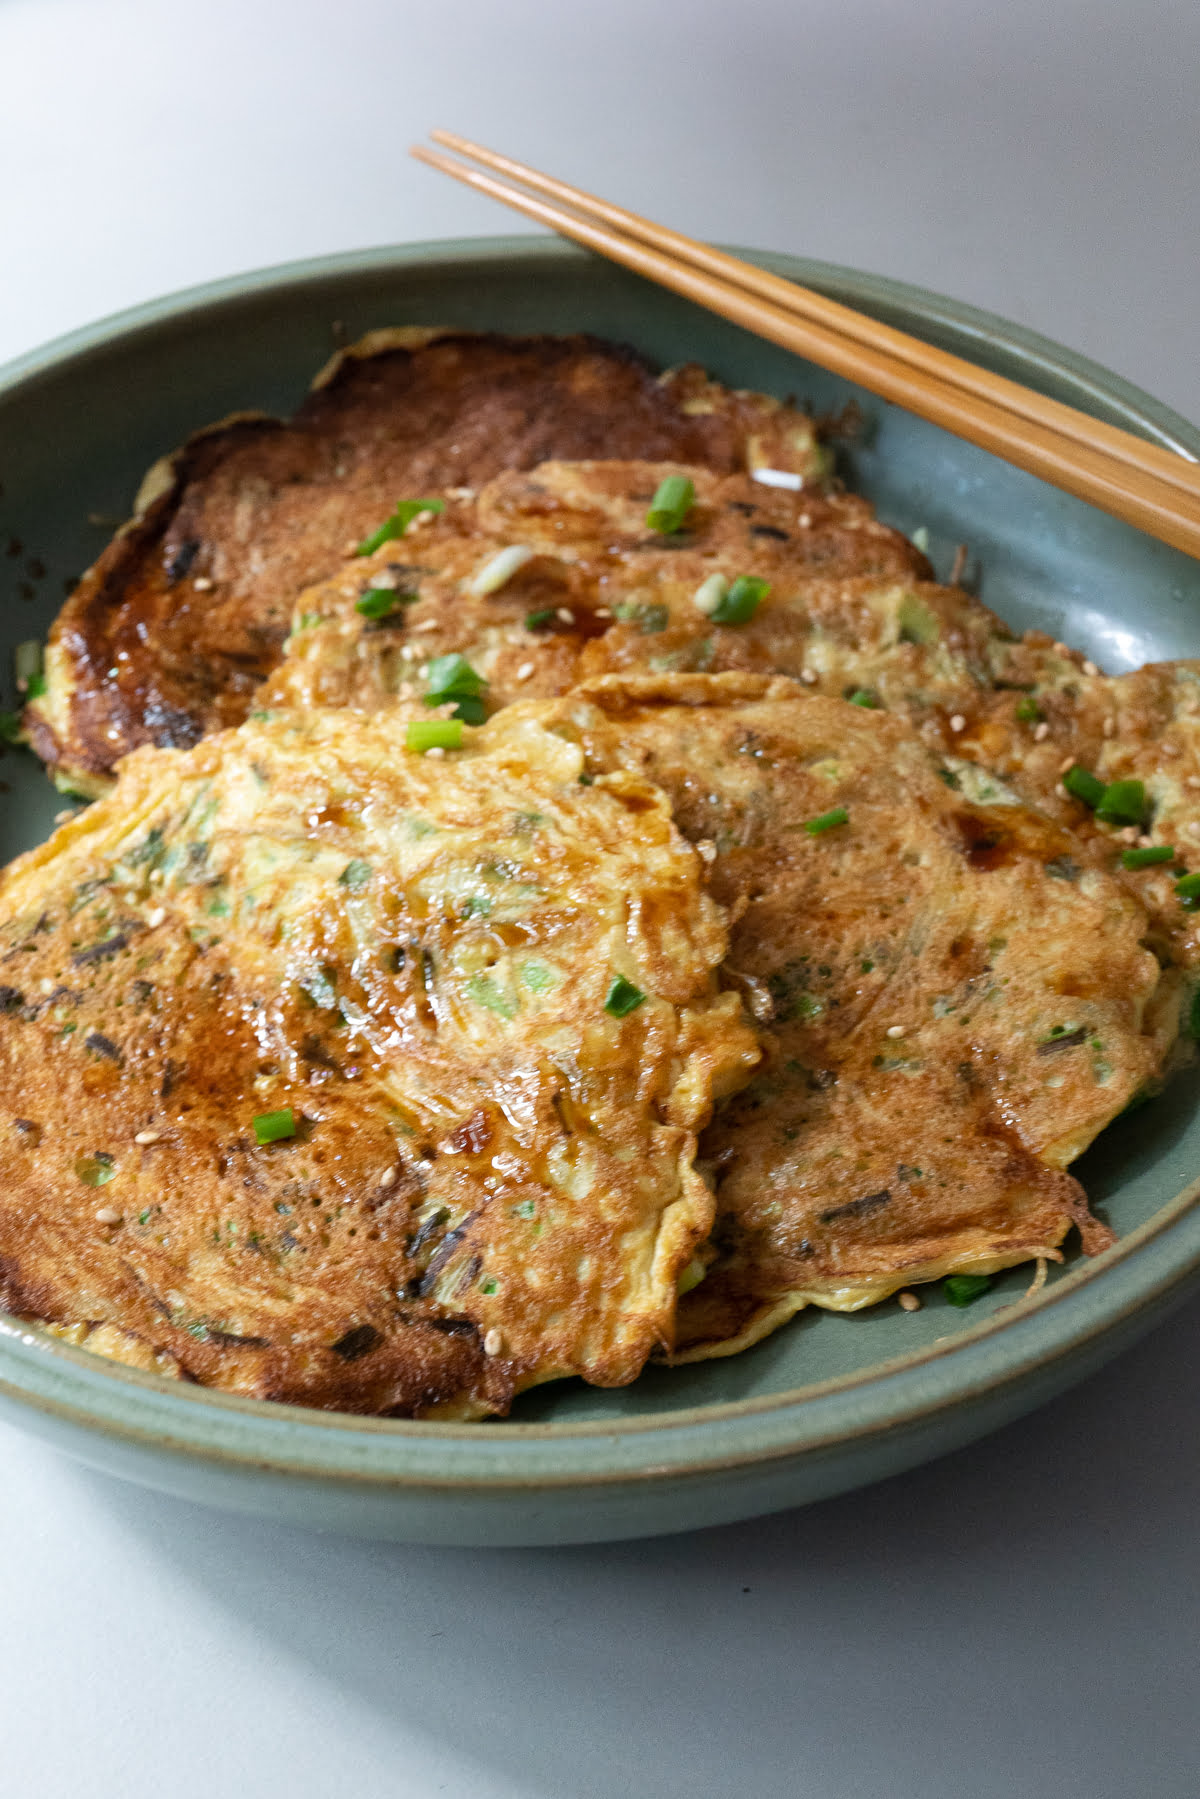 Prepared Chive Vermicelli Egg Pancakes served in a shallow dish.